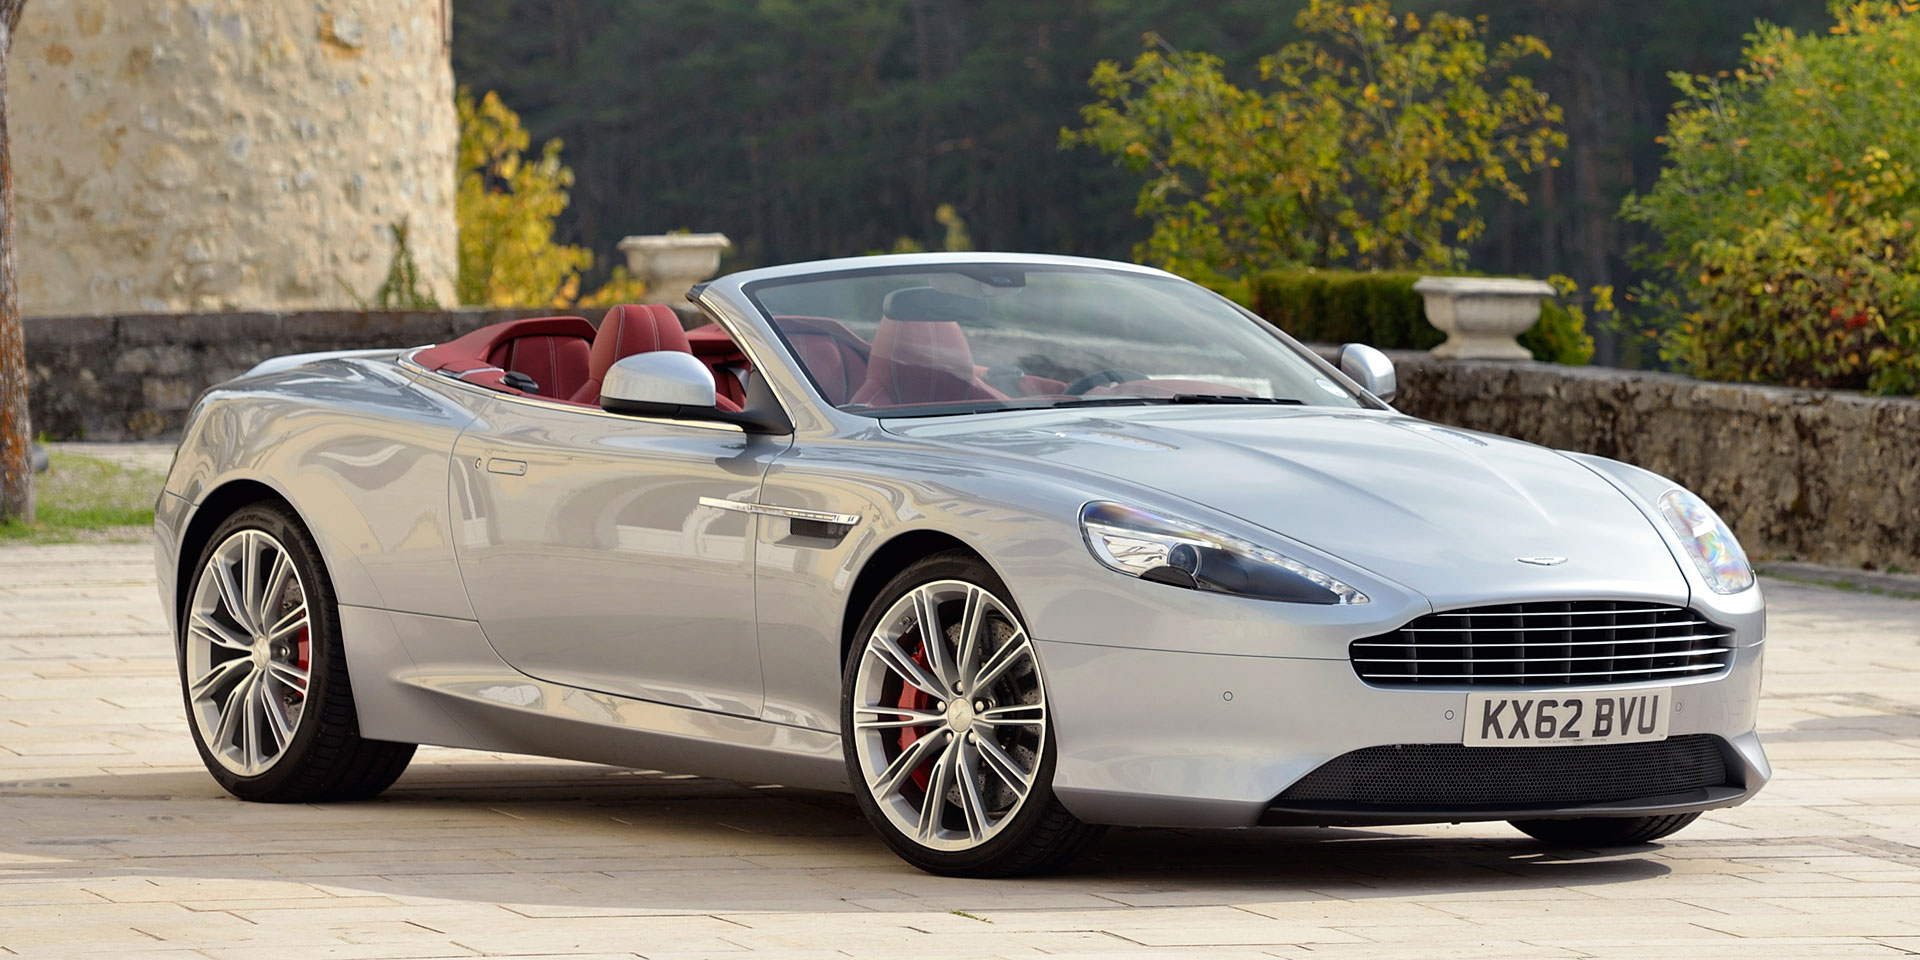 2016 ASTON MARTIN DB9 GT VOLANTE: On Display At The 2016 Chicago Auto Show  Is The DB9 GT Volante, The Aston Martin That Transforms From A Closed GT  Into ...